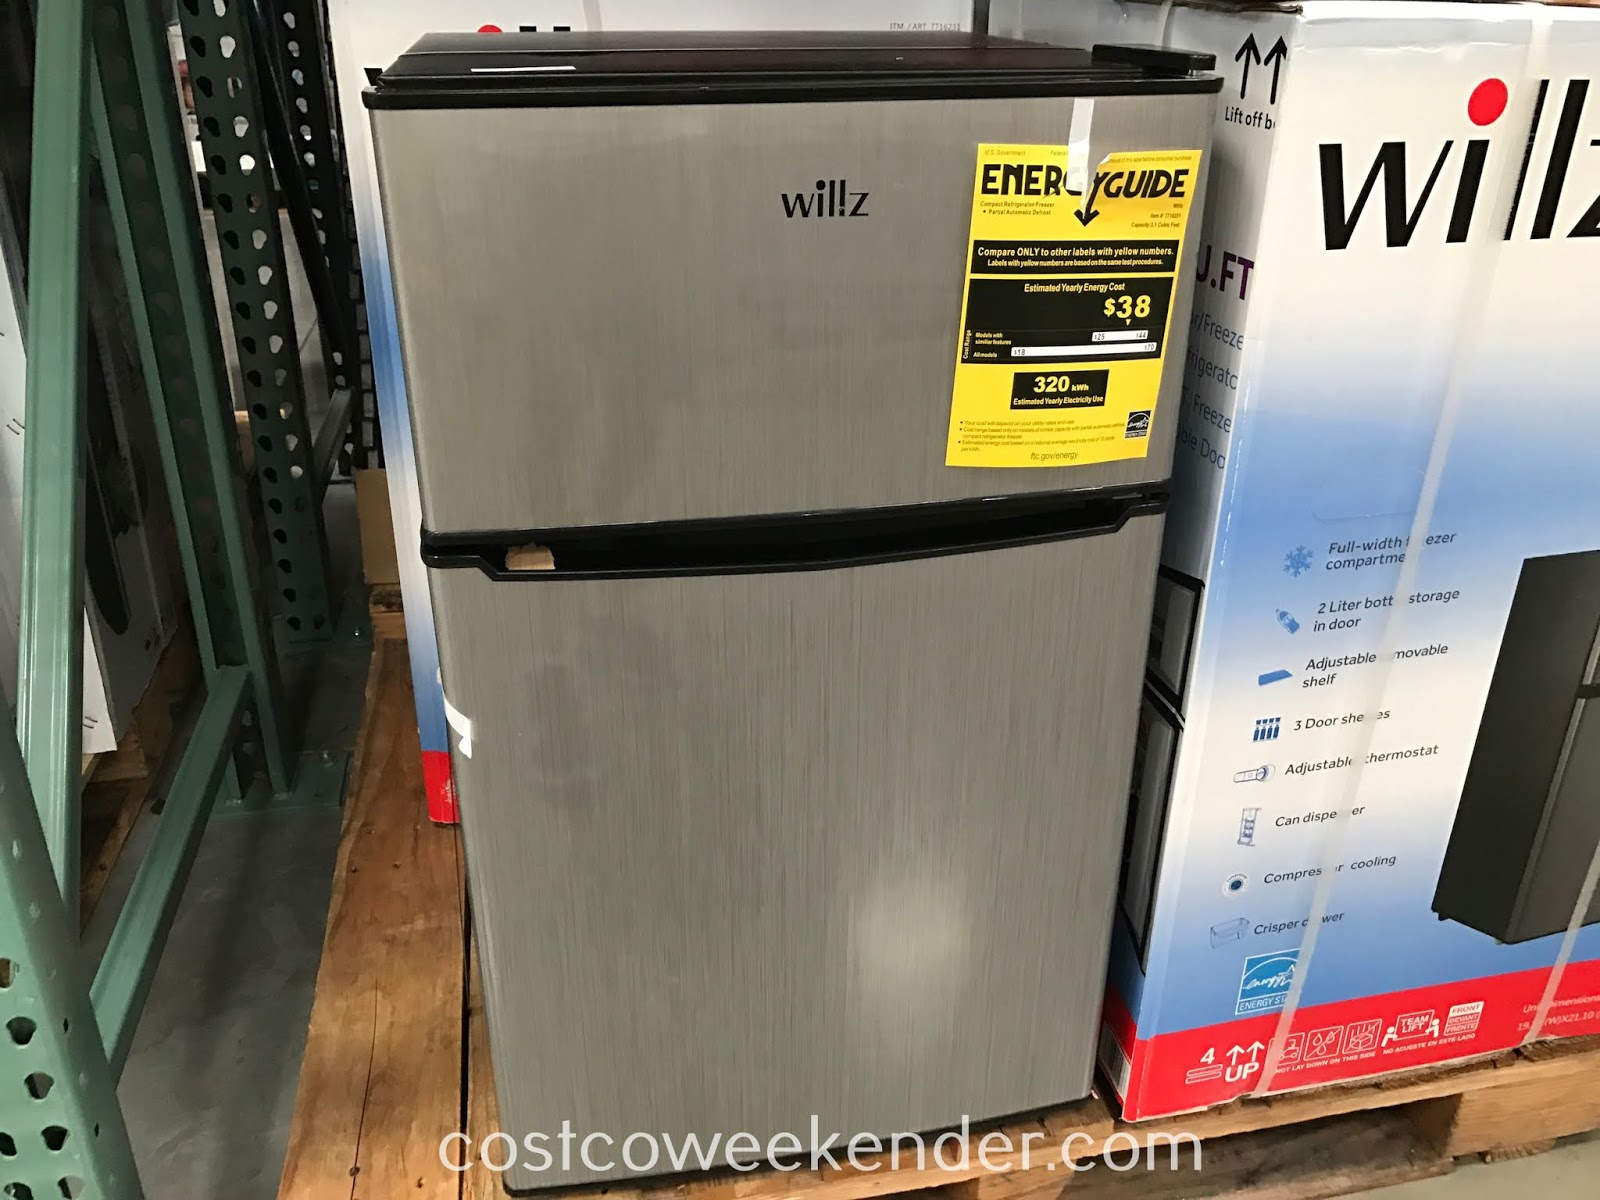 Easily grab a cold drink with the Willz 3.1 cubic ft Compact Refrigerator/Freezer (WLR31TS1E)